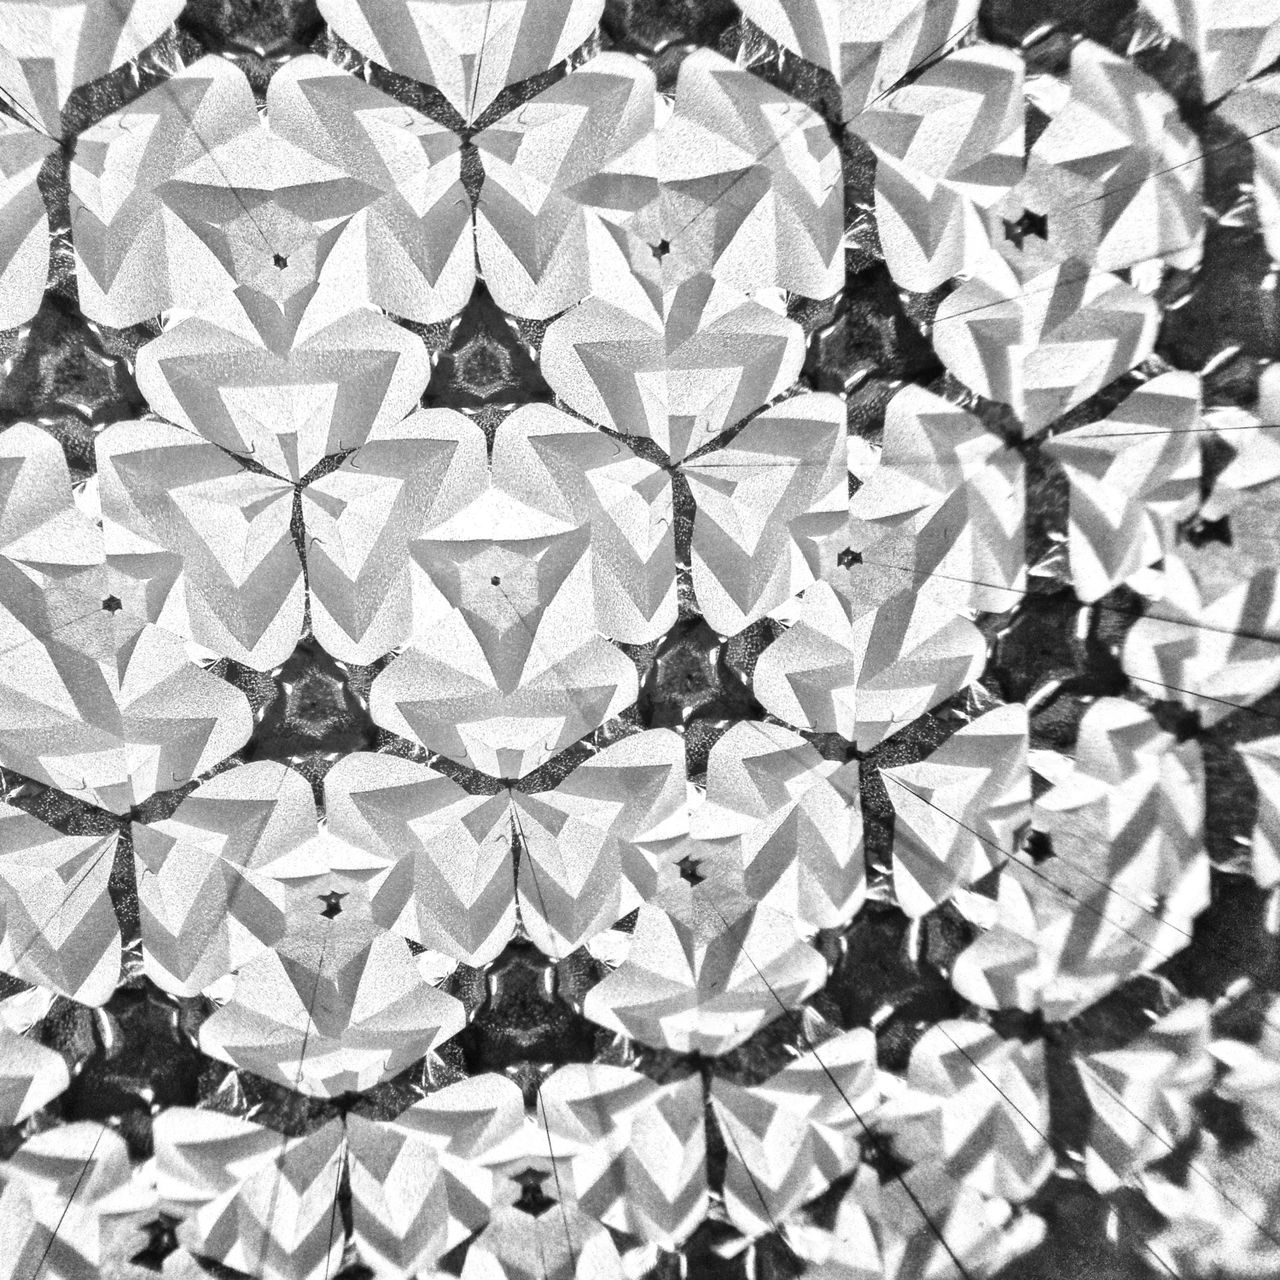 Black and white photo taken through a kaleidoscope showing abstract shapes and lines.